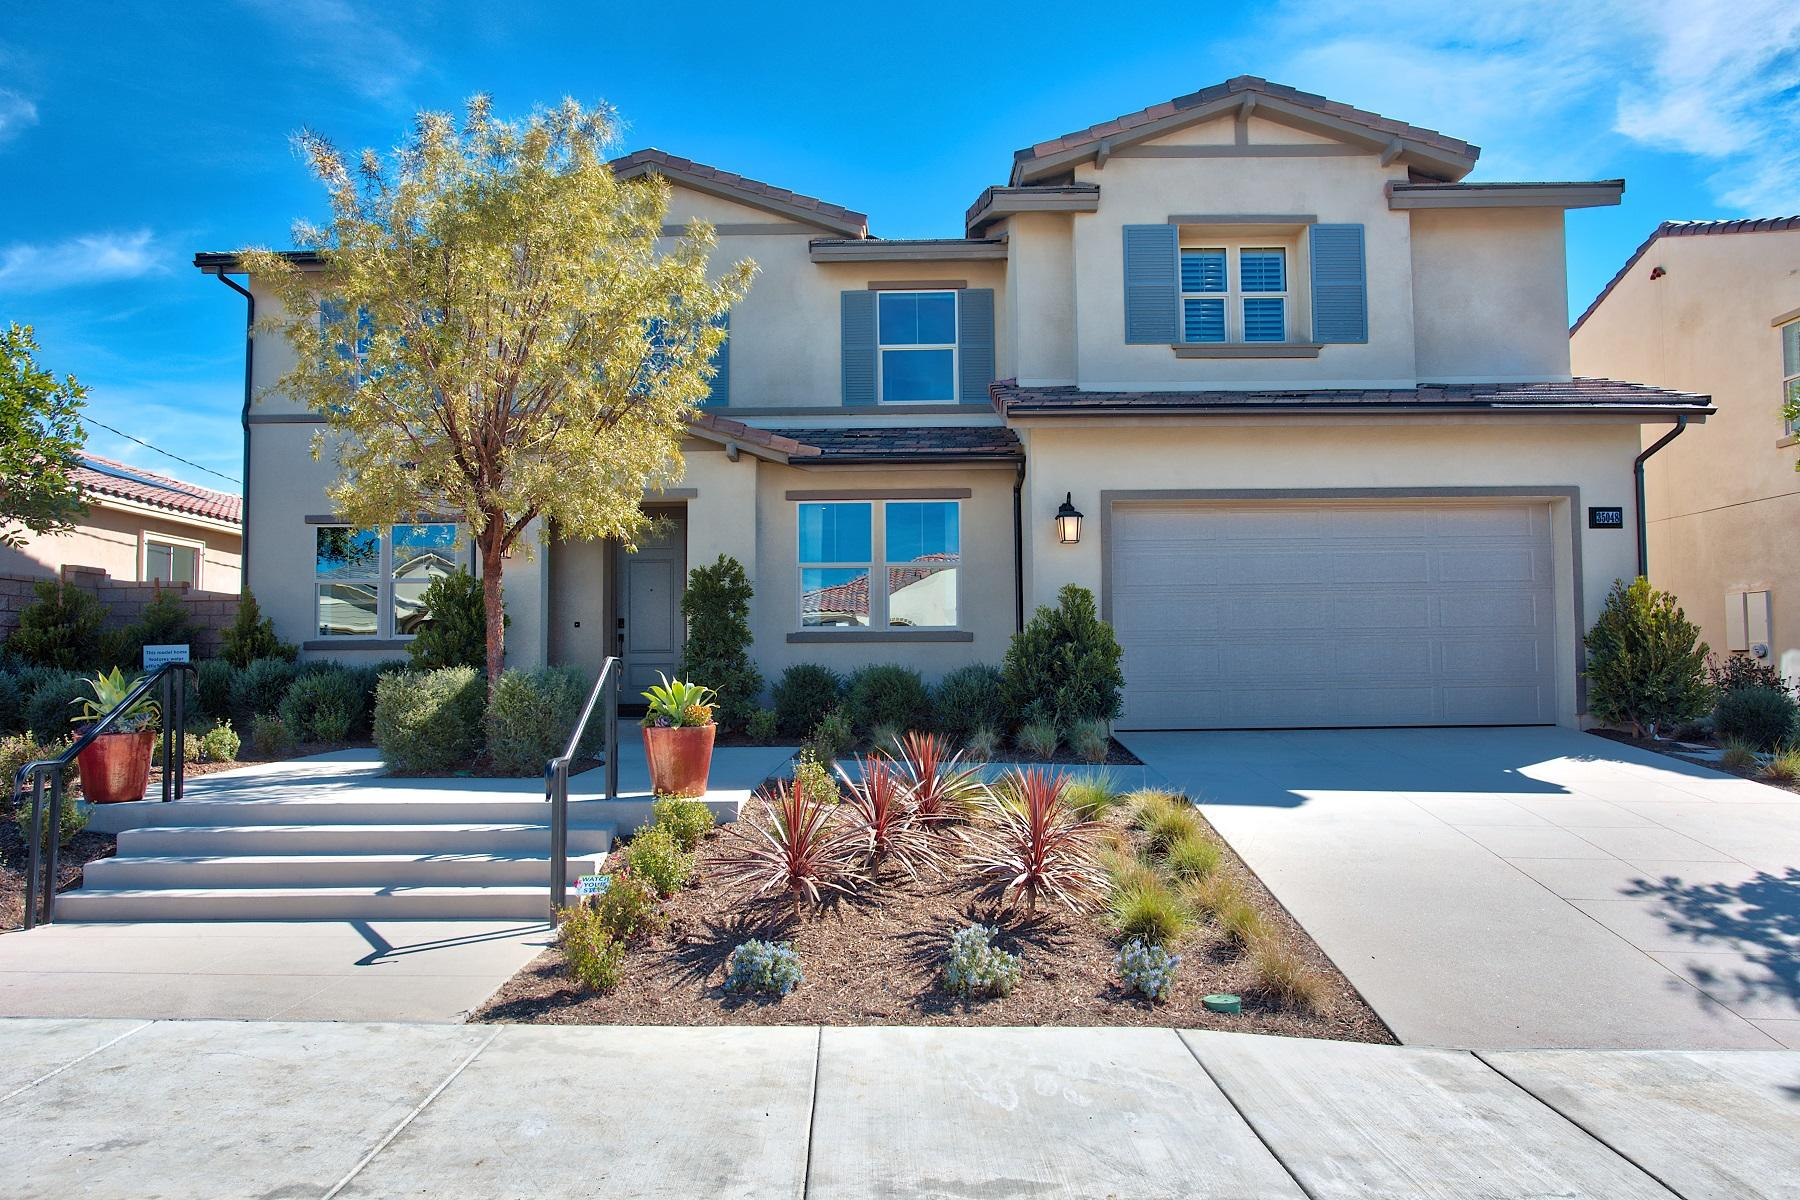 aspen glen st for sale murrieta ca